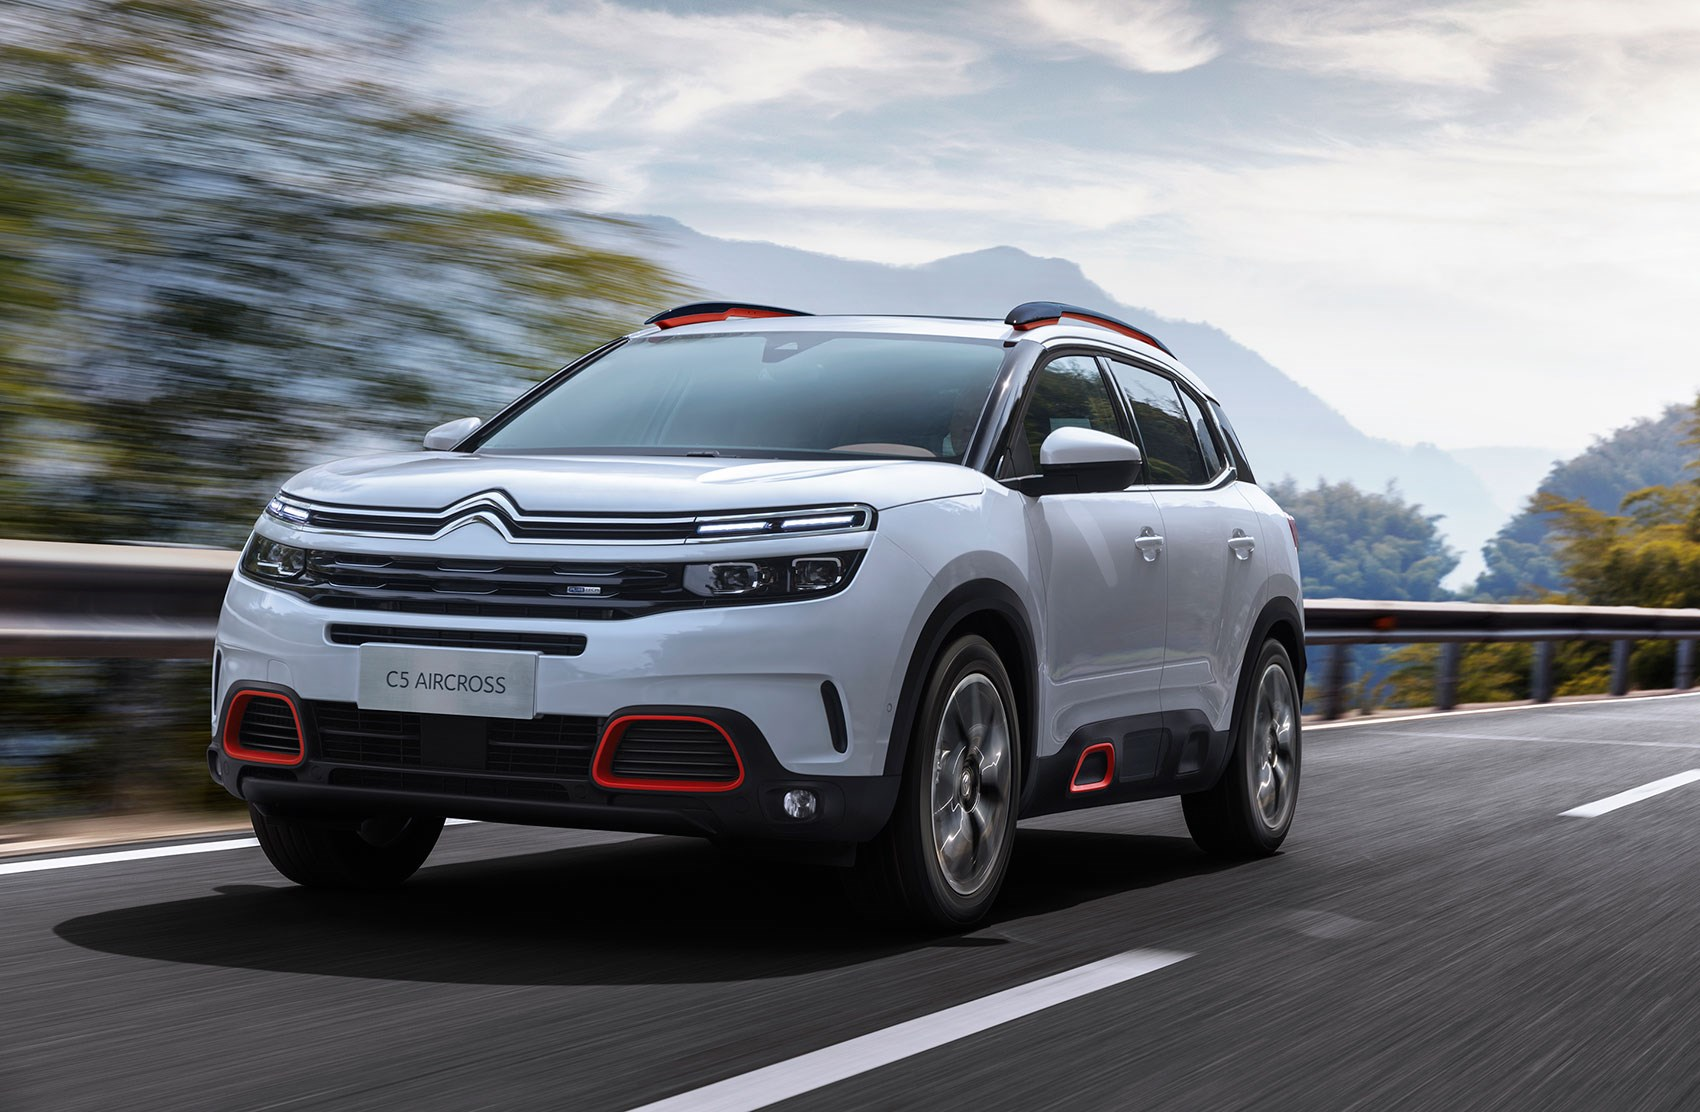 citroen c5 aircross 2018 revealed in shanghai news and pictures by car magazine. Black Bedroom Furniture Sets. Home Design Ideas